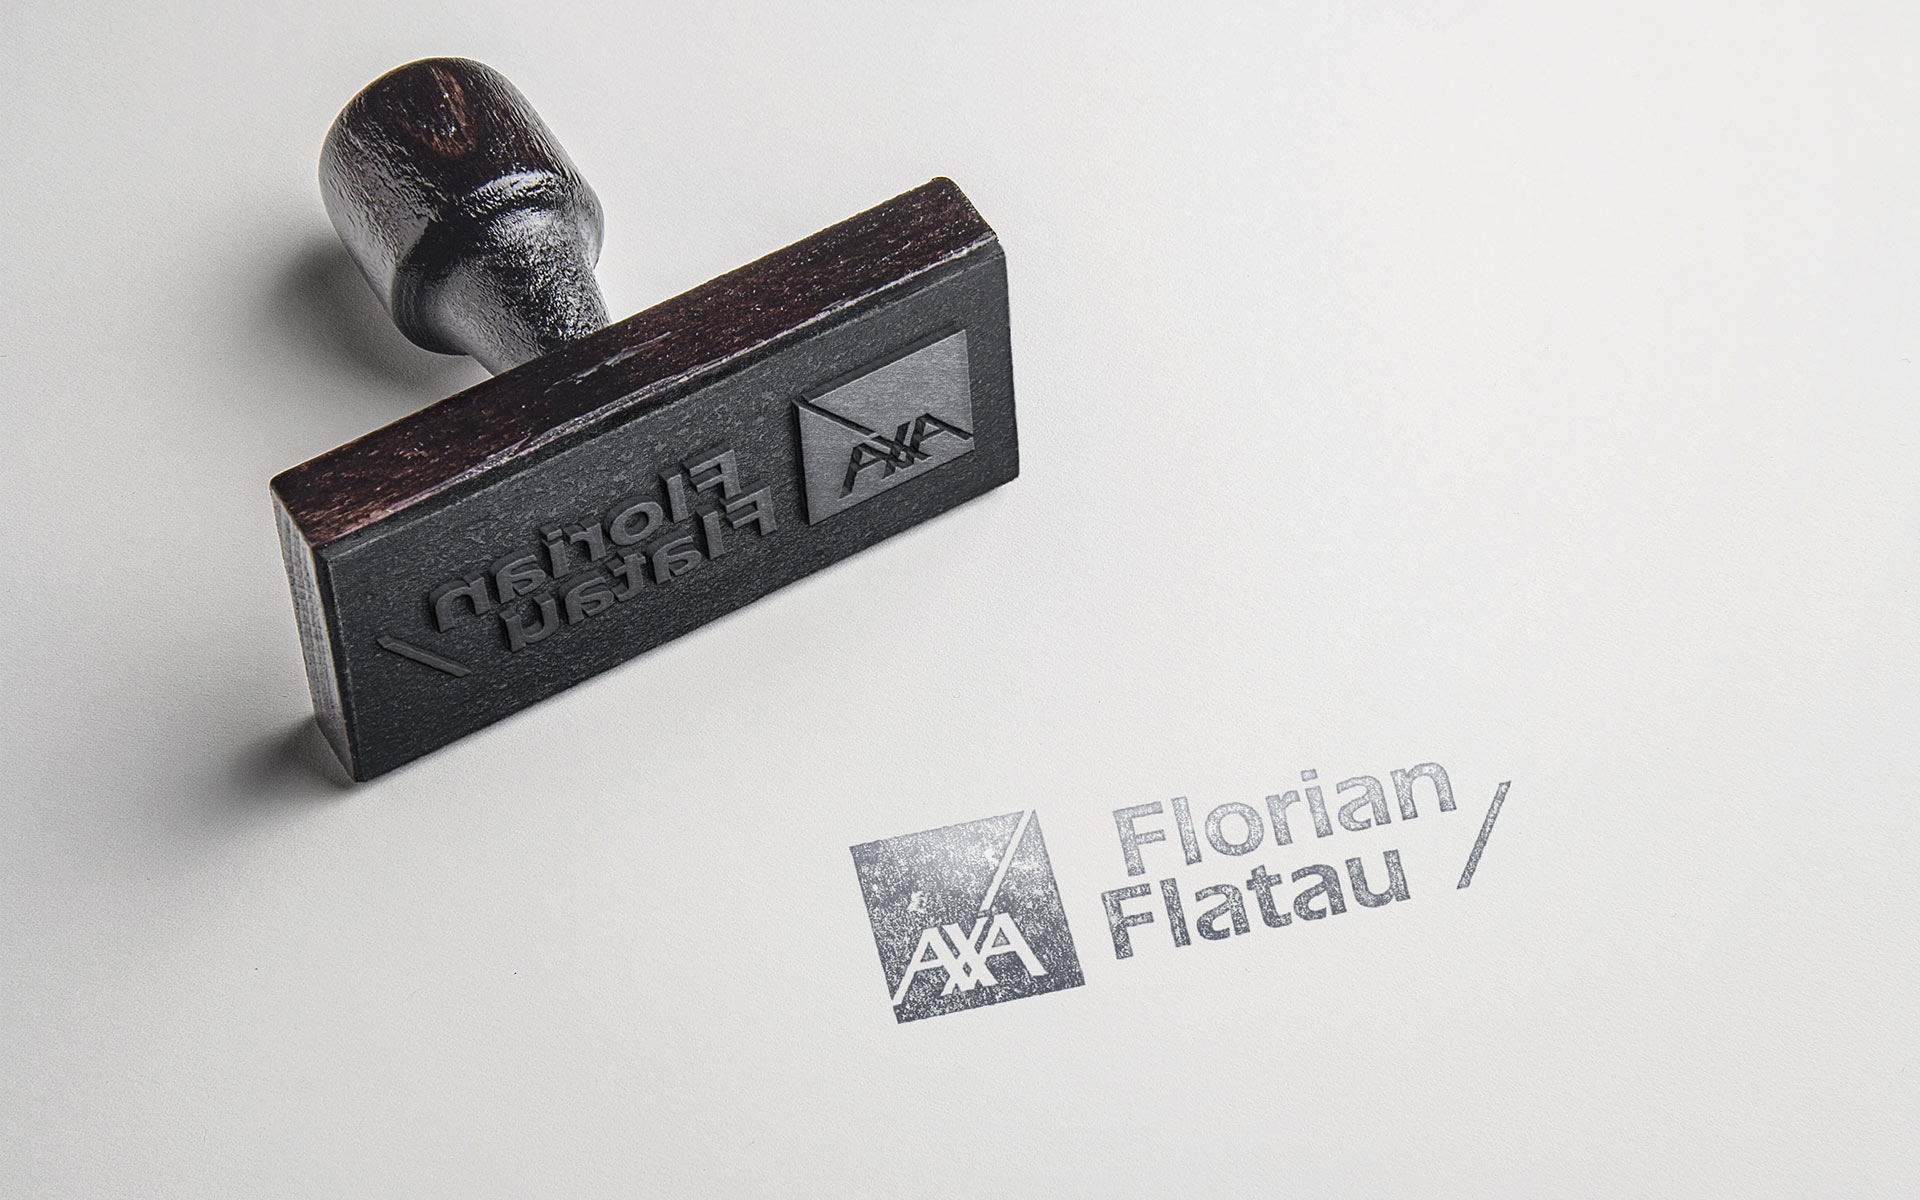 stay_golden-axa-florian_flatau-logotype-03